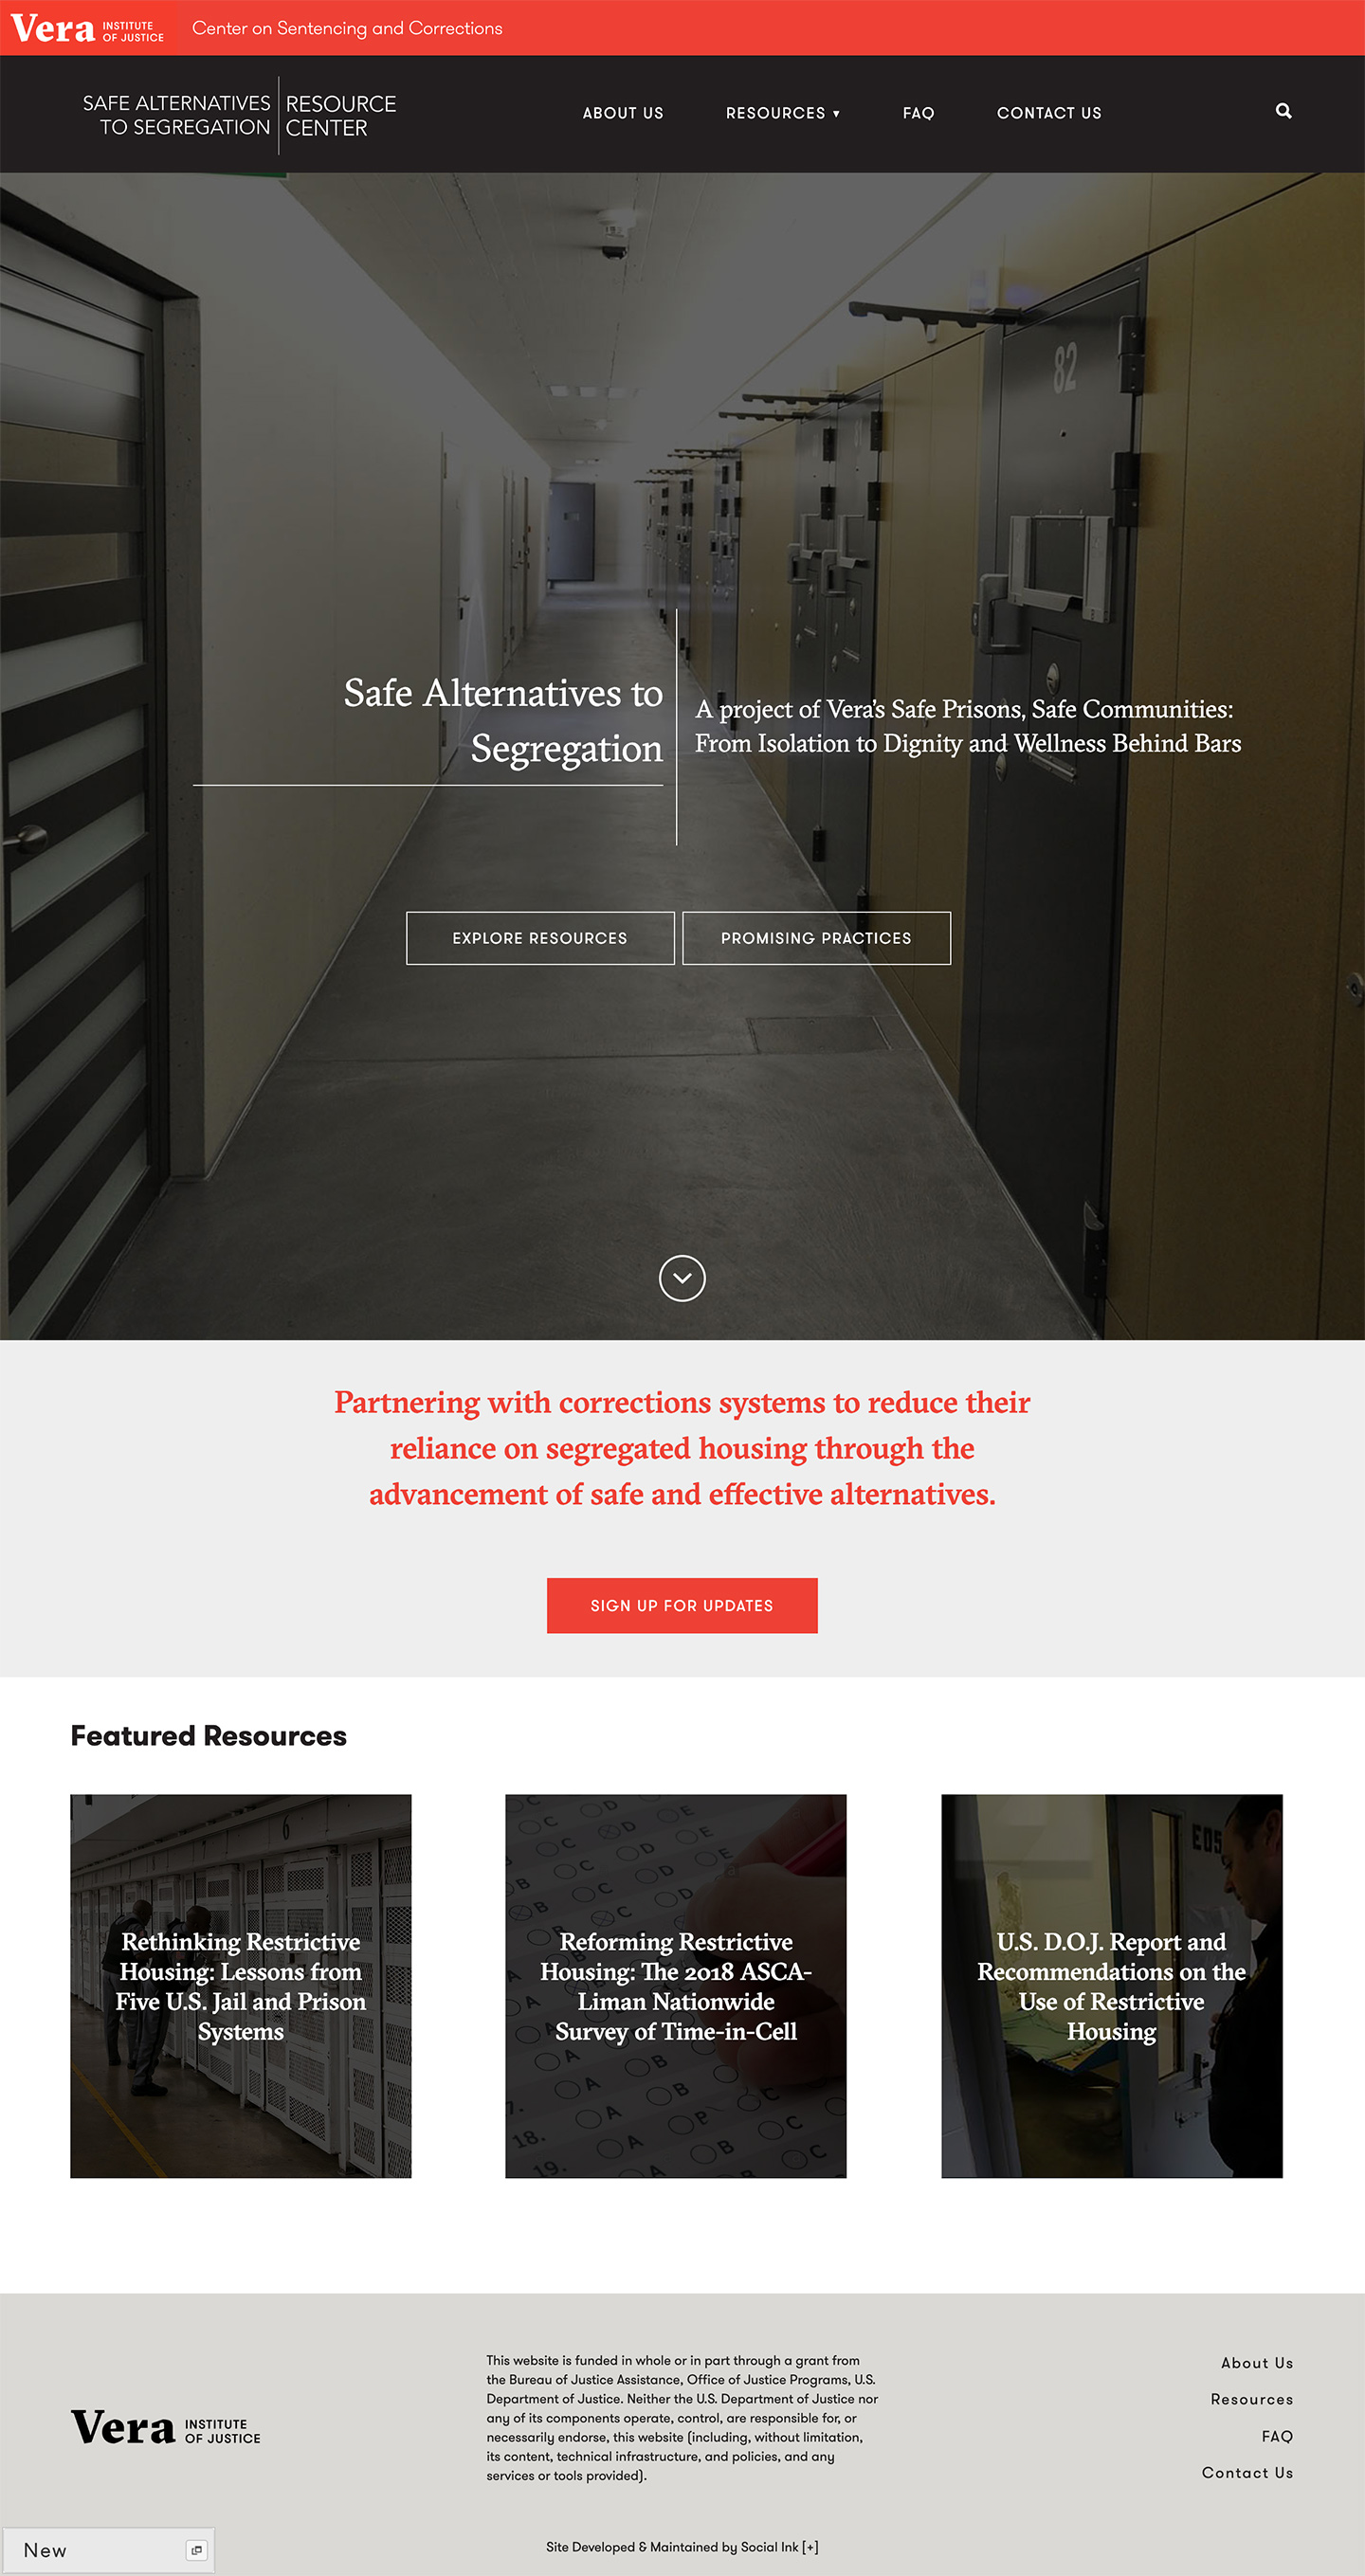 Vera Institute of Justice | Safe Alternatives to Segregation Resource Center: Vera SASRC New Branded Home